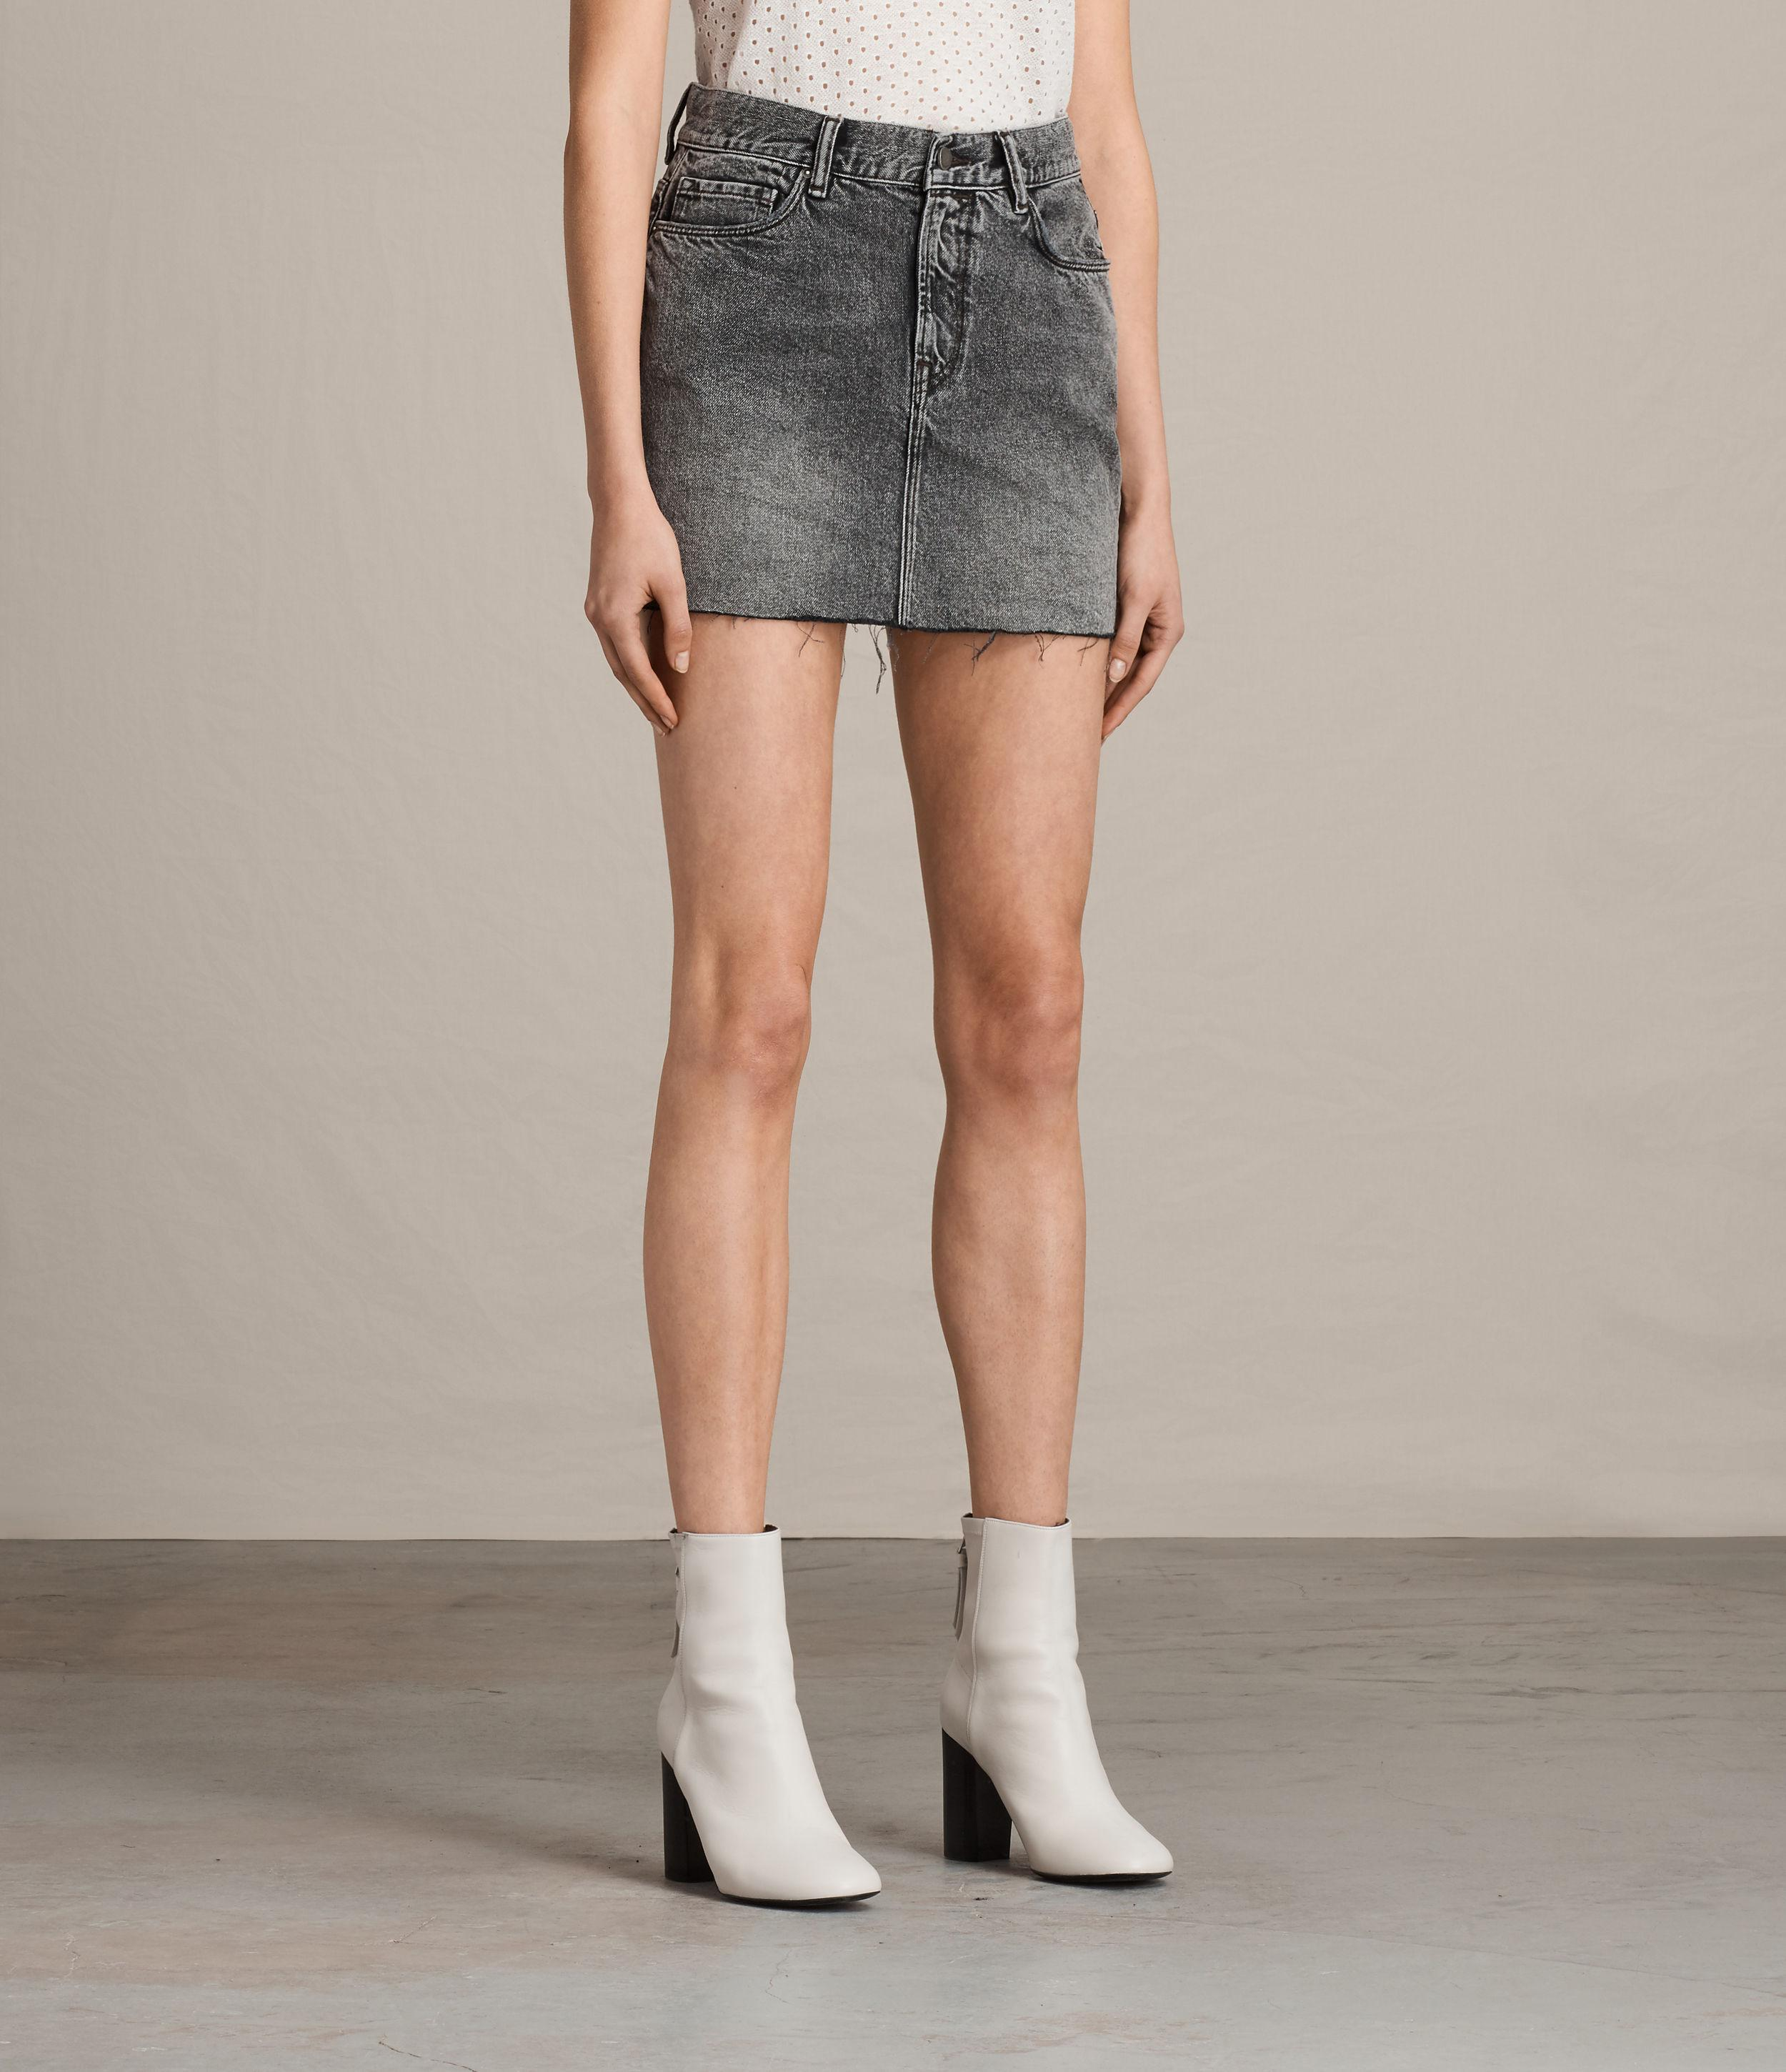 sale detailed pictures official images a3caa1 allsaints gray betty denim skirt - thedelhidawn.com